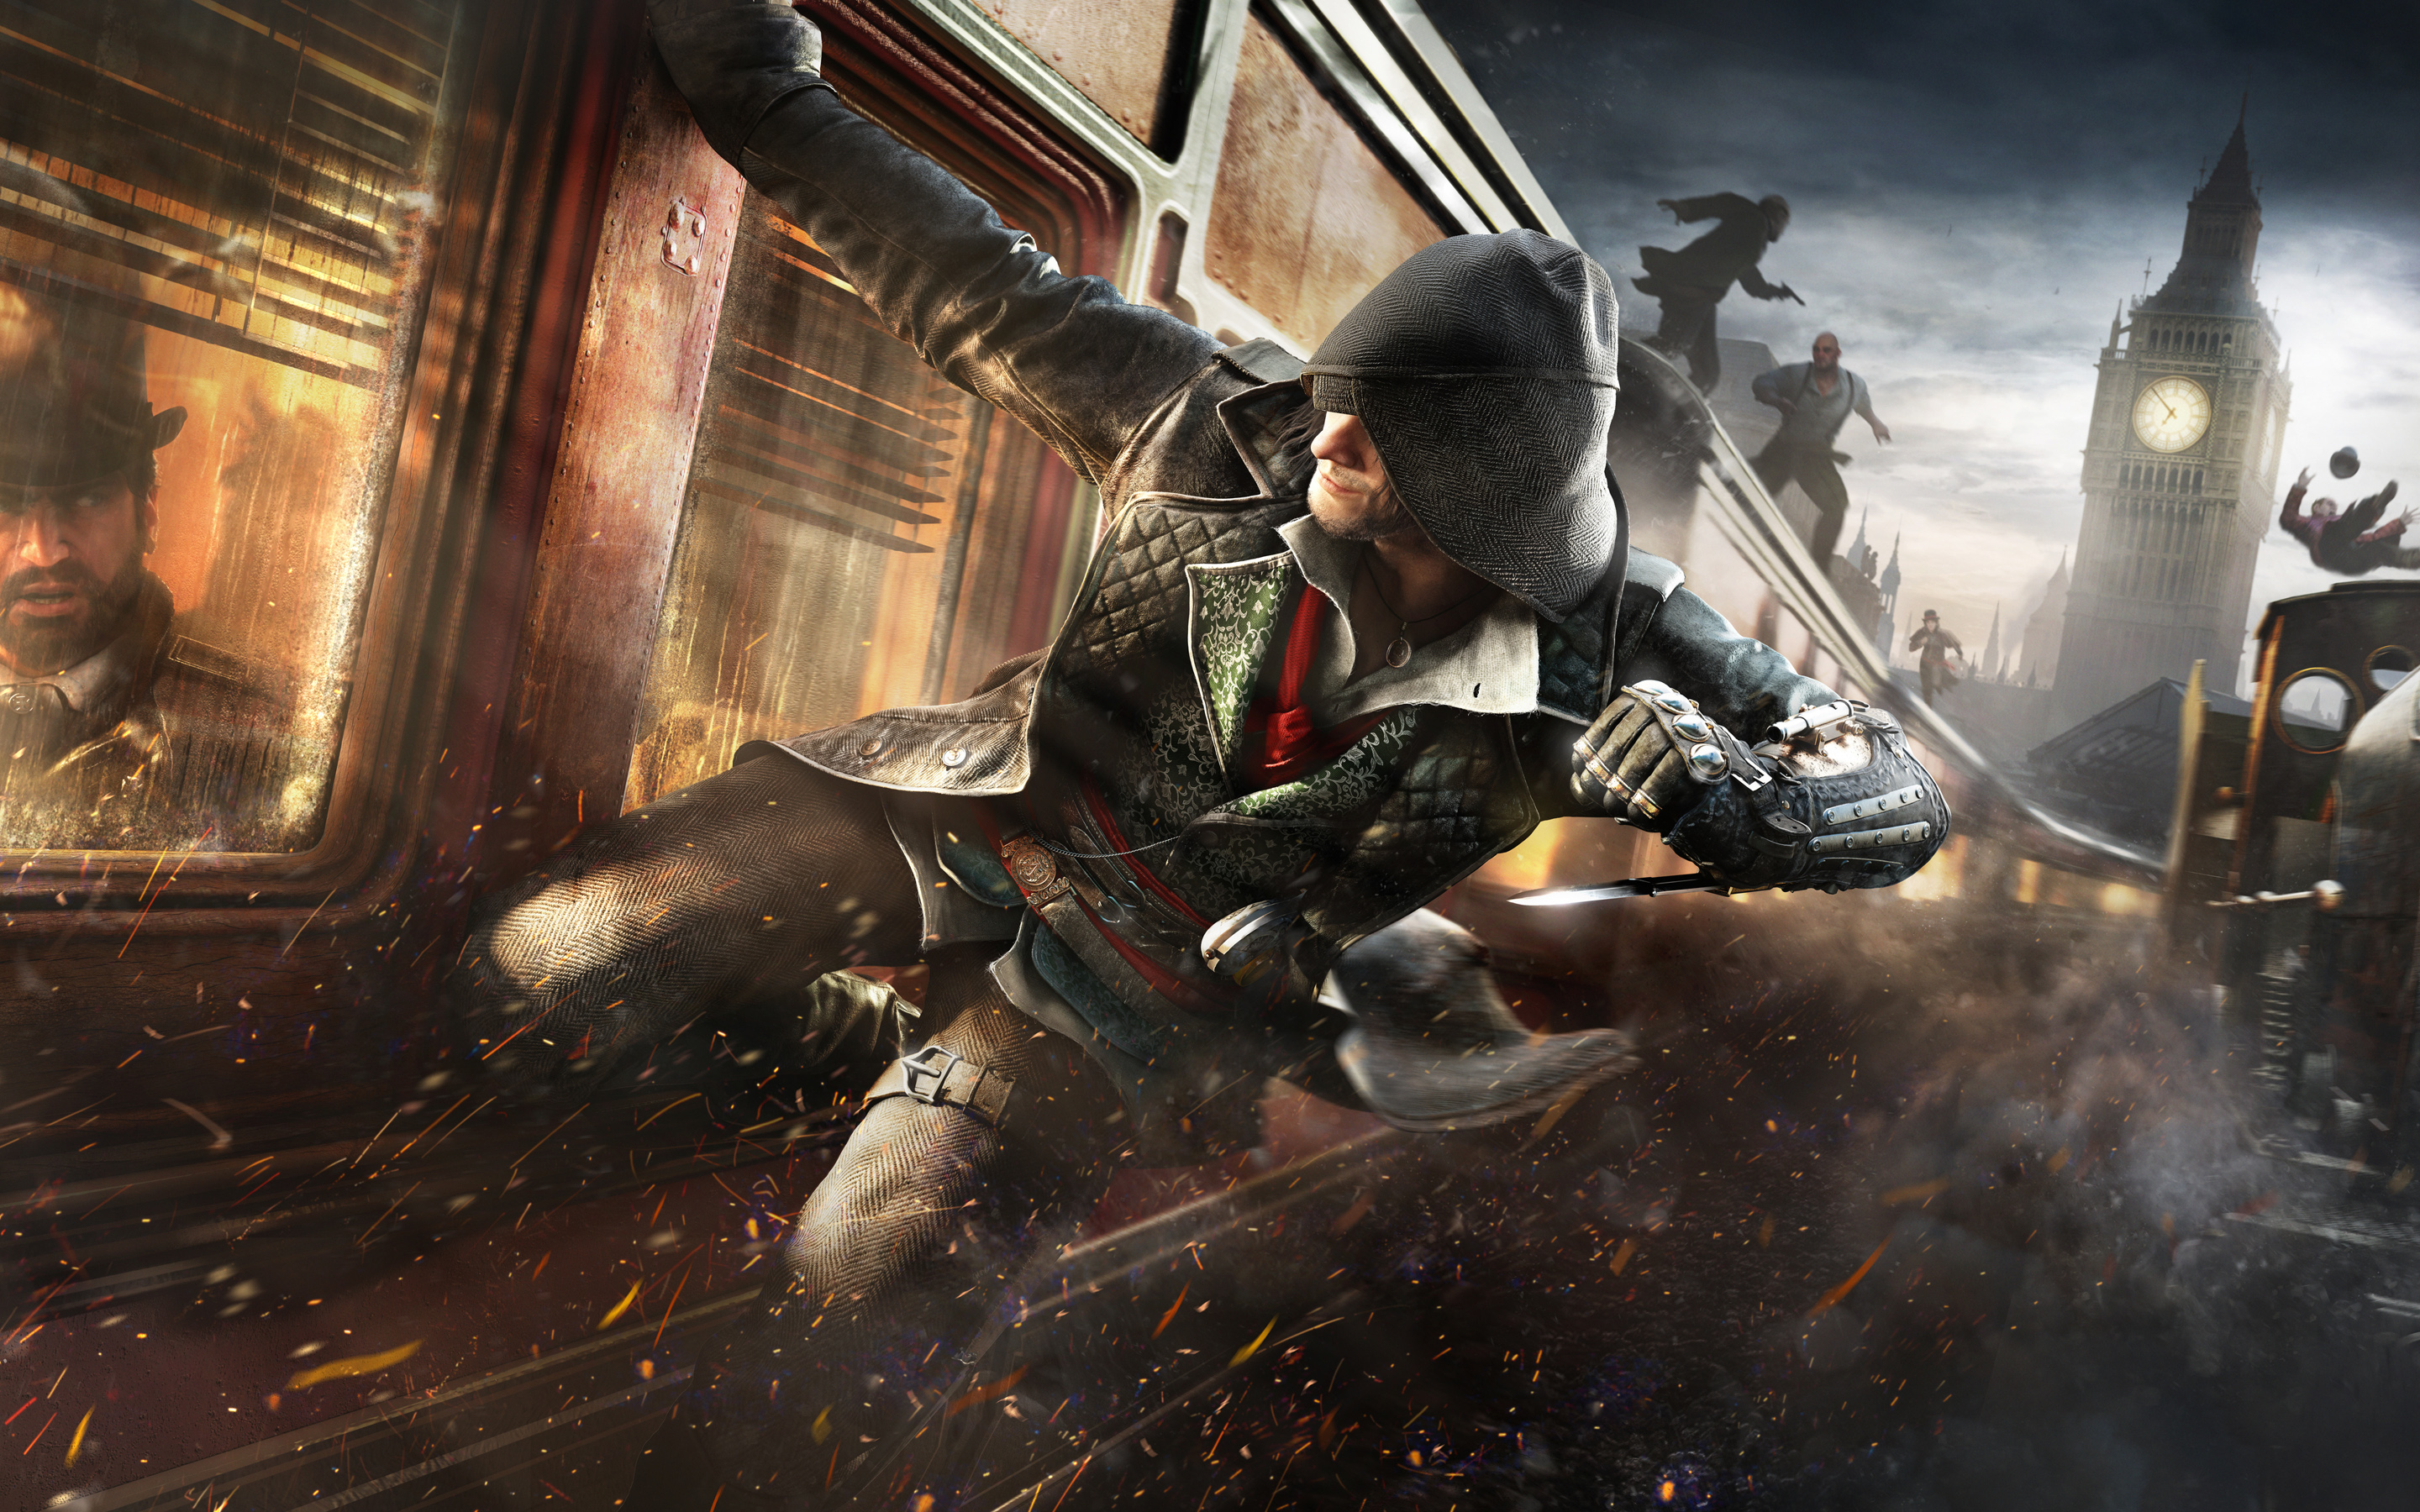 Assassins Creed Syndicate HD wallpapers download 2880x1800